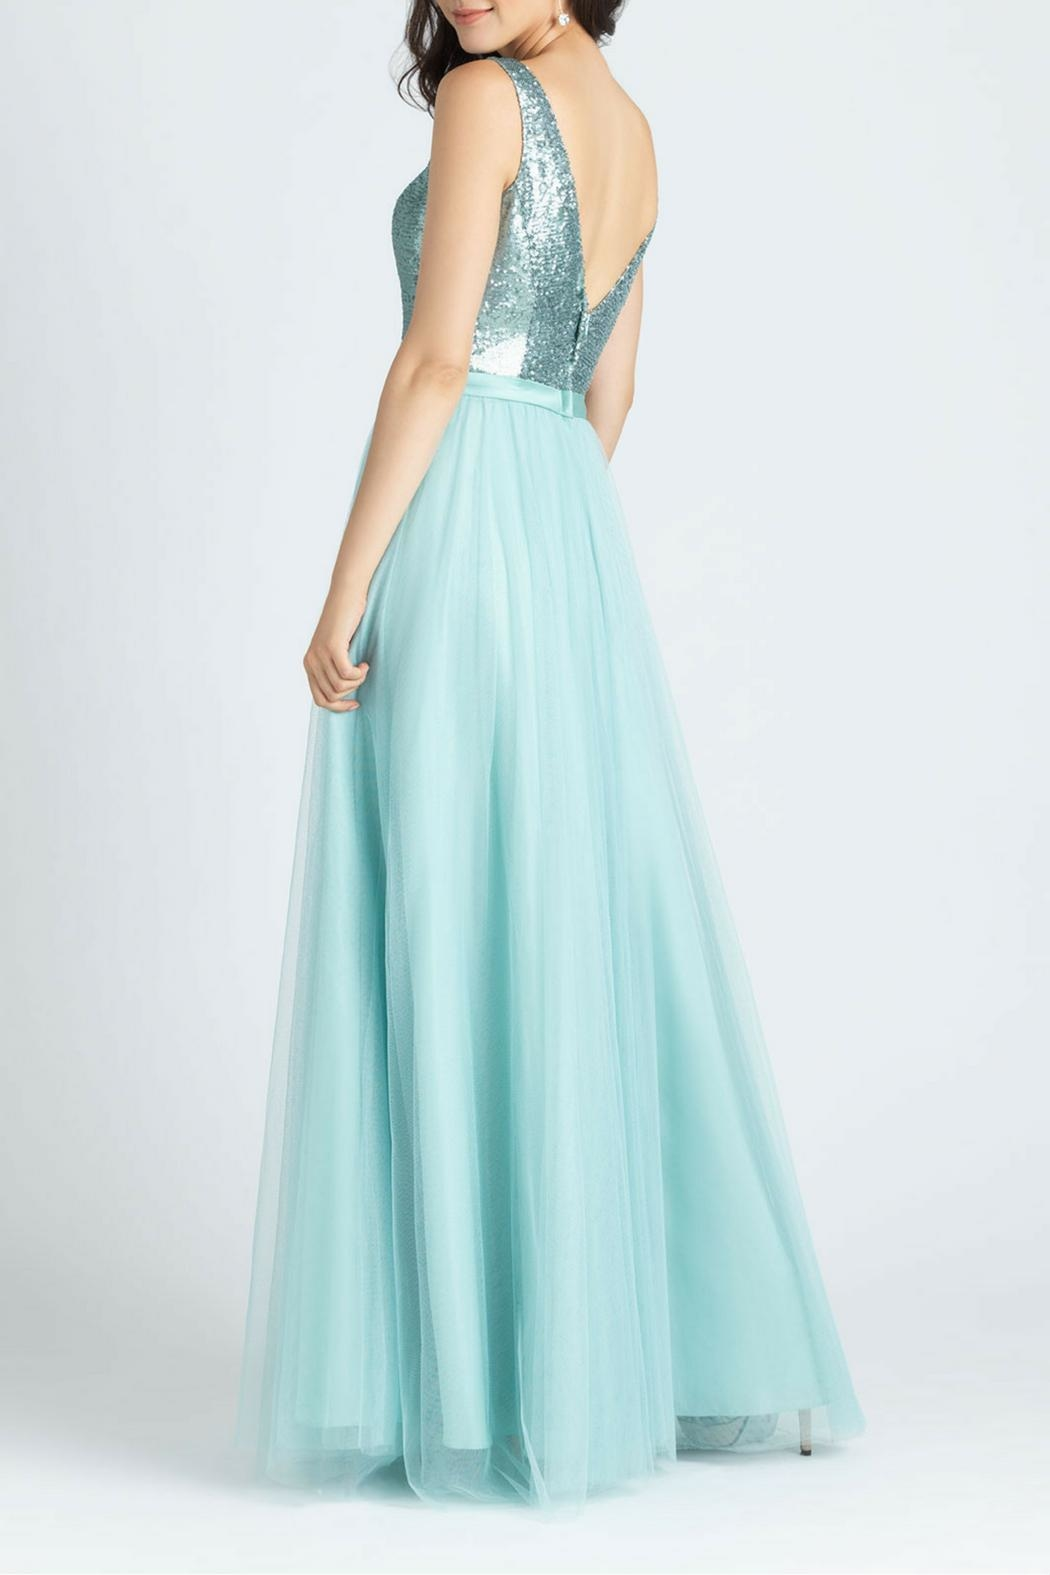 Allure Bridals Sequins Tulle Dress - Front Full Image